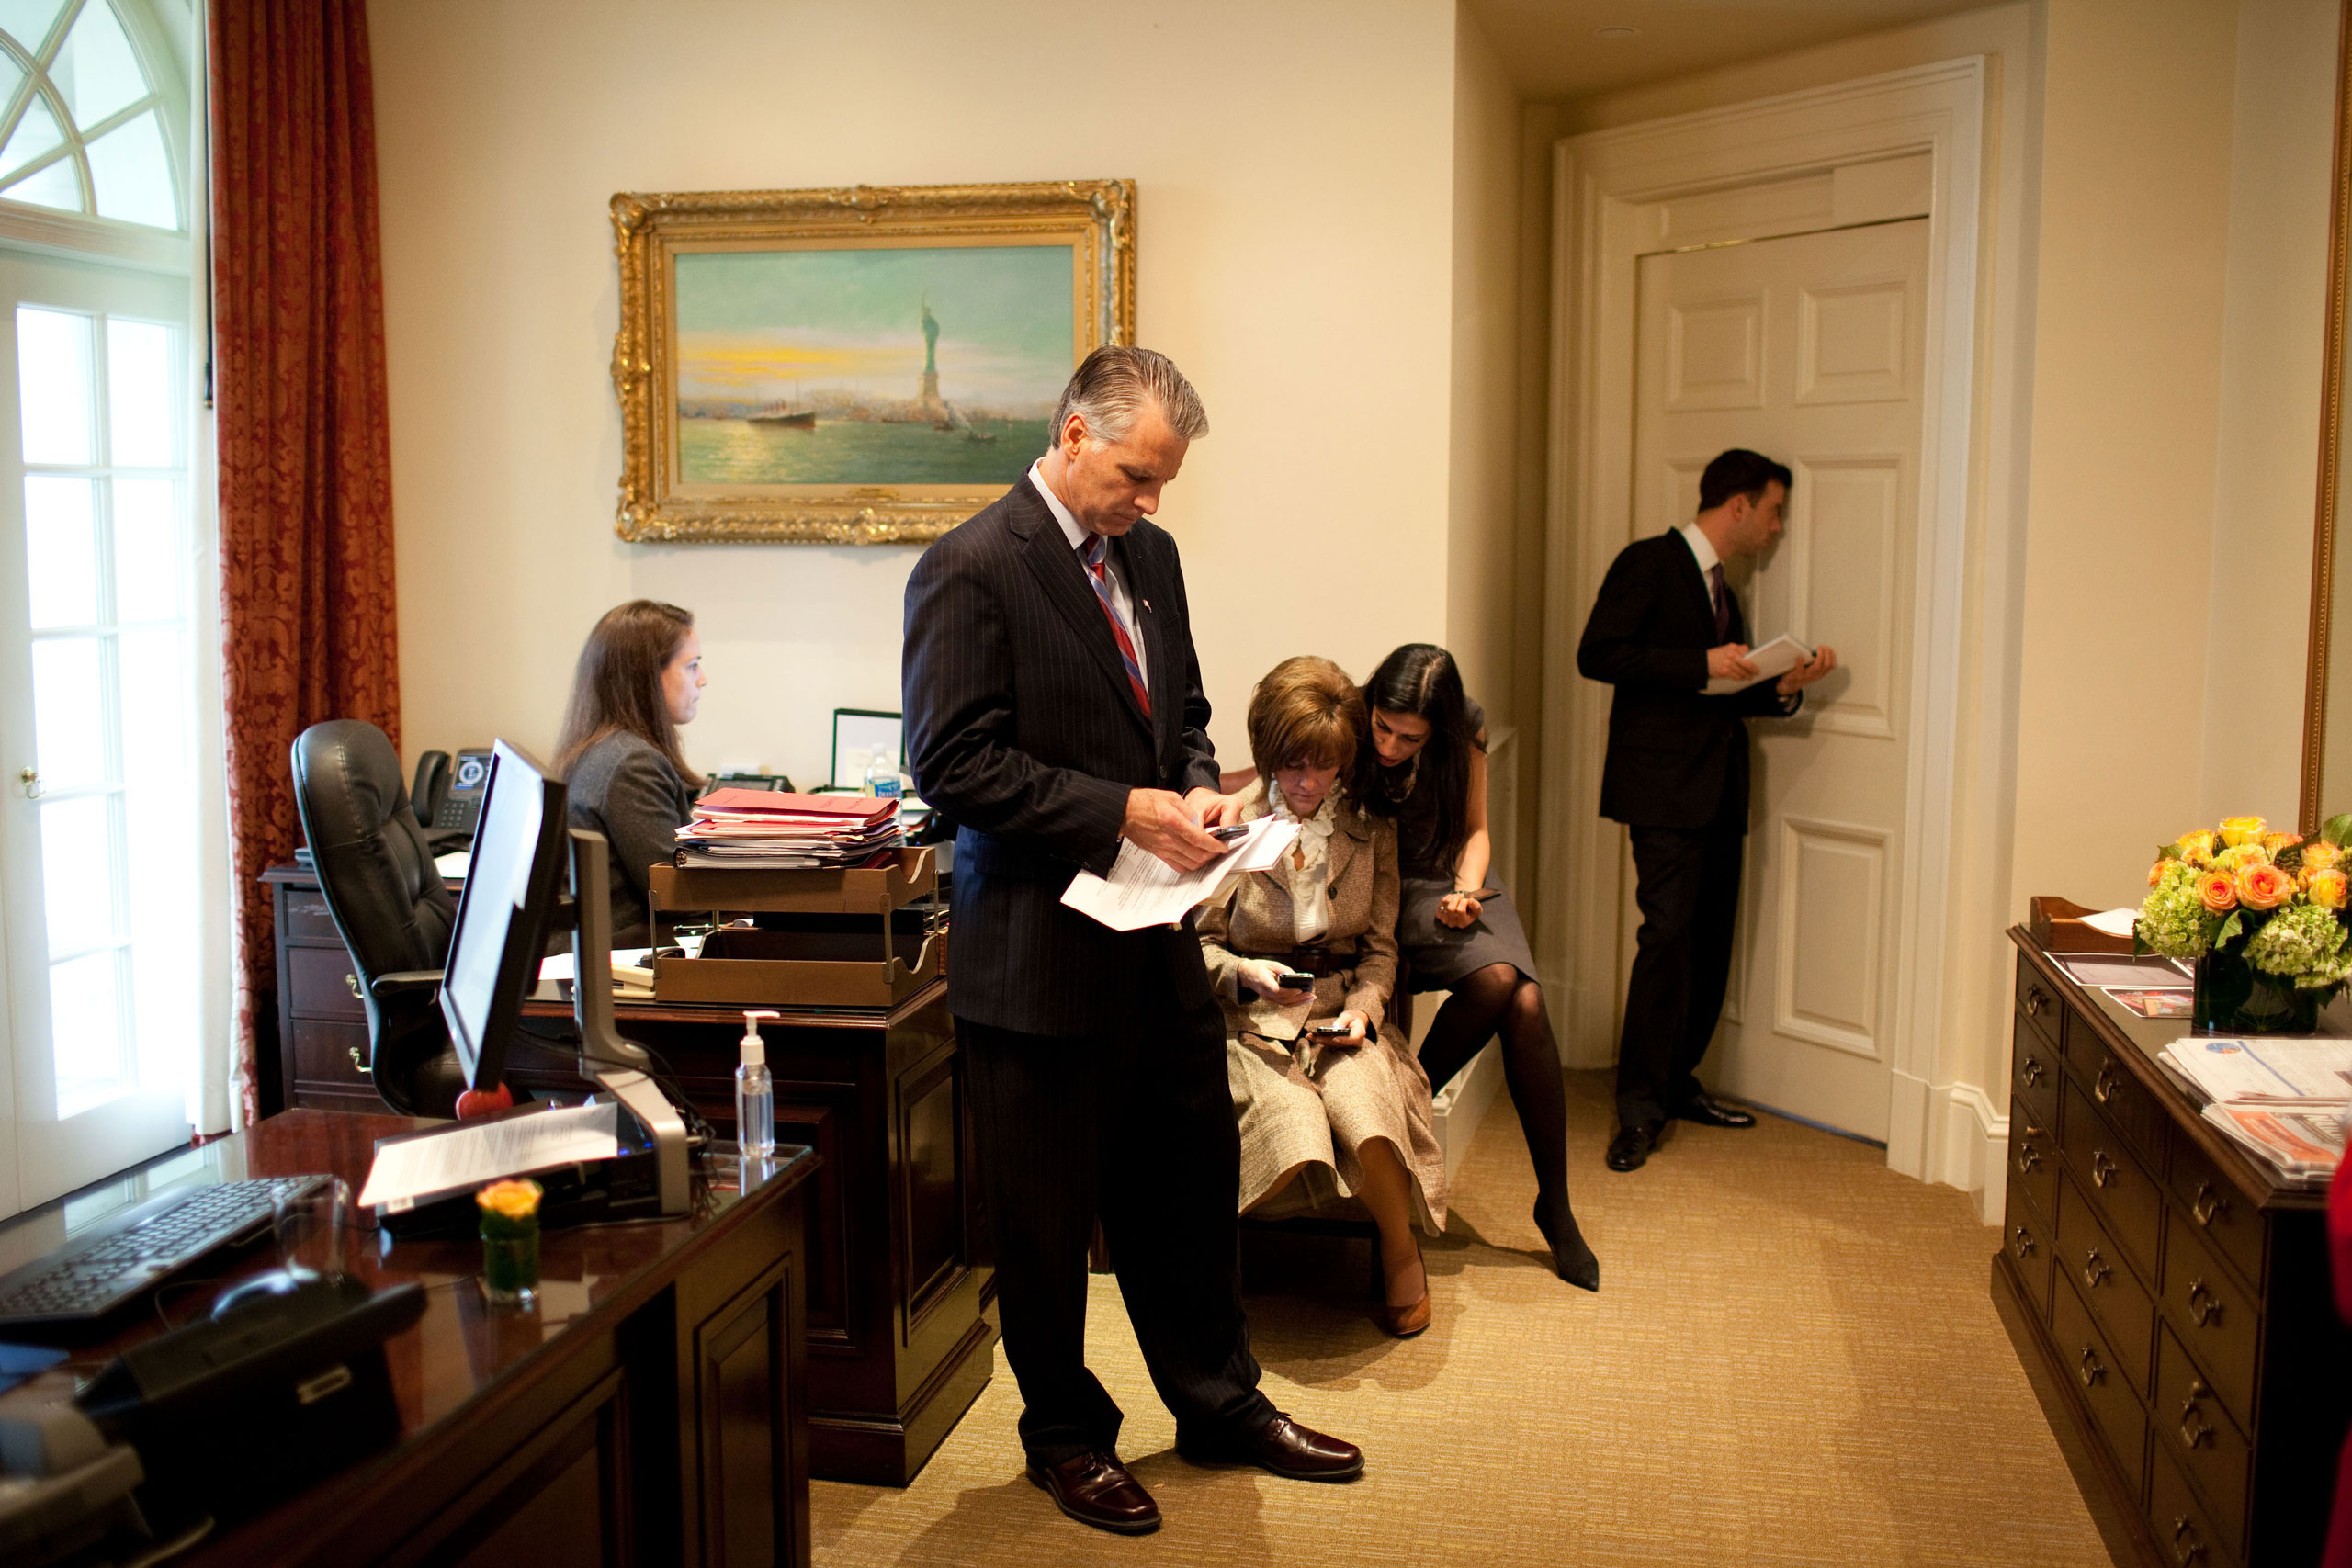 Brian Mosteller, deputy director of Oval Office operations, looks through a peephole in the Oval Office door to monitor the progress of the bilateral meeting between President Barack Obama and Prime Minister Manmohan Singh of India. Also pictured, from left, are Personal Secretary Katie Johnson, Chief of Protocol Capricia Marshall, Huma Abedin, advisor to Secretary of State Hillary Clinton, and U.S. Ambassador to India Timothy Roemer, Nov. 24, 2009.